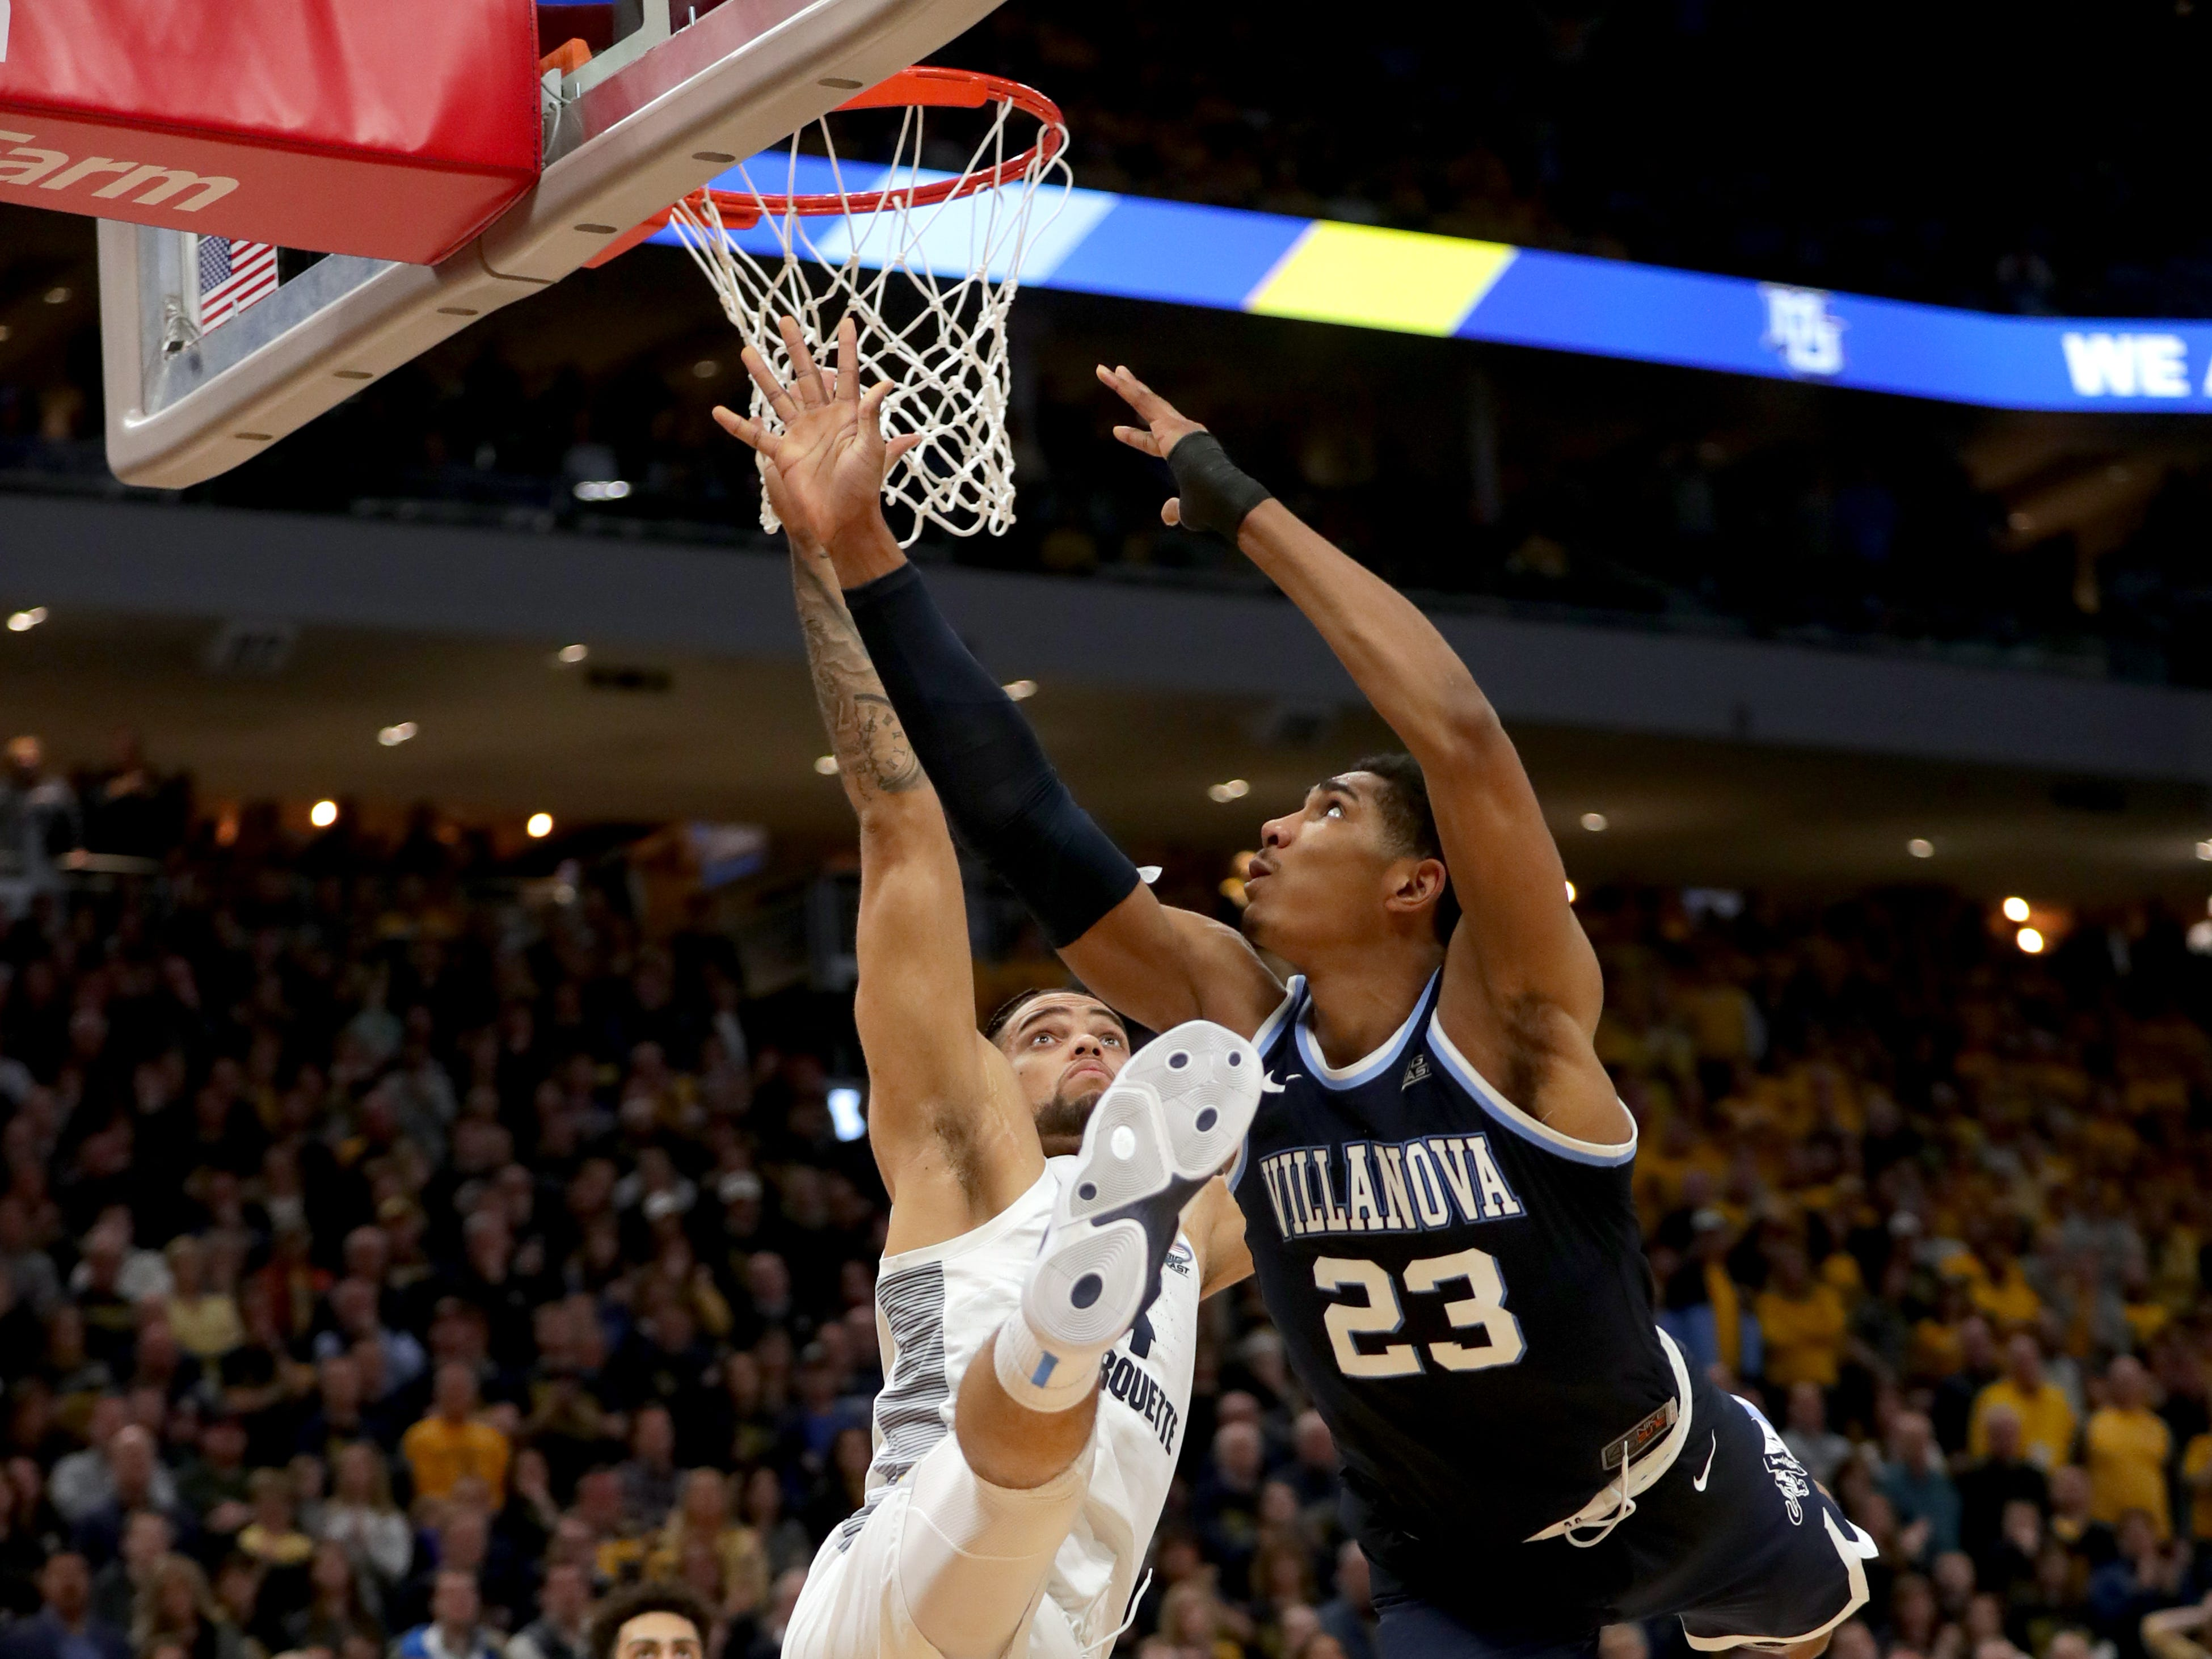 Villanova forward Jermaine Samuels is fouled by Marquette's Theo John on Saturday.